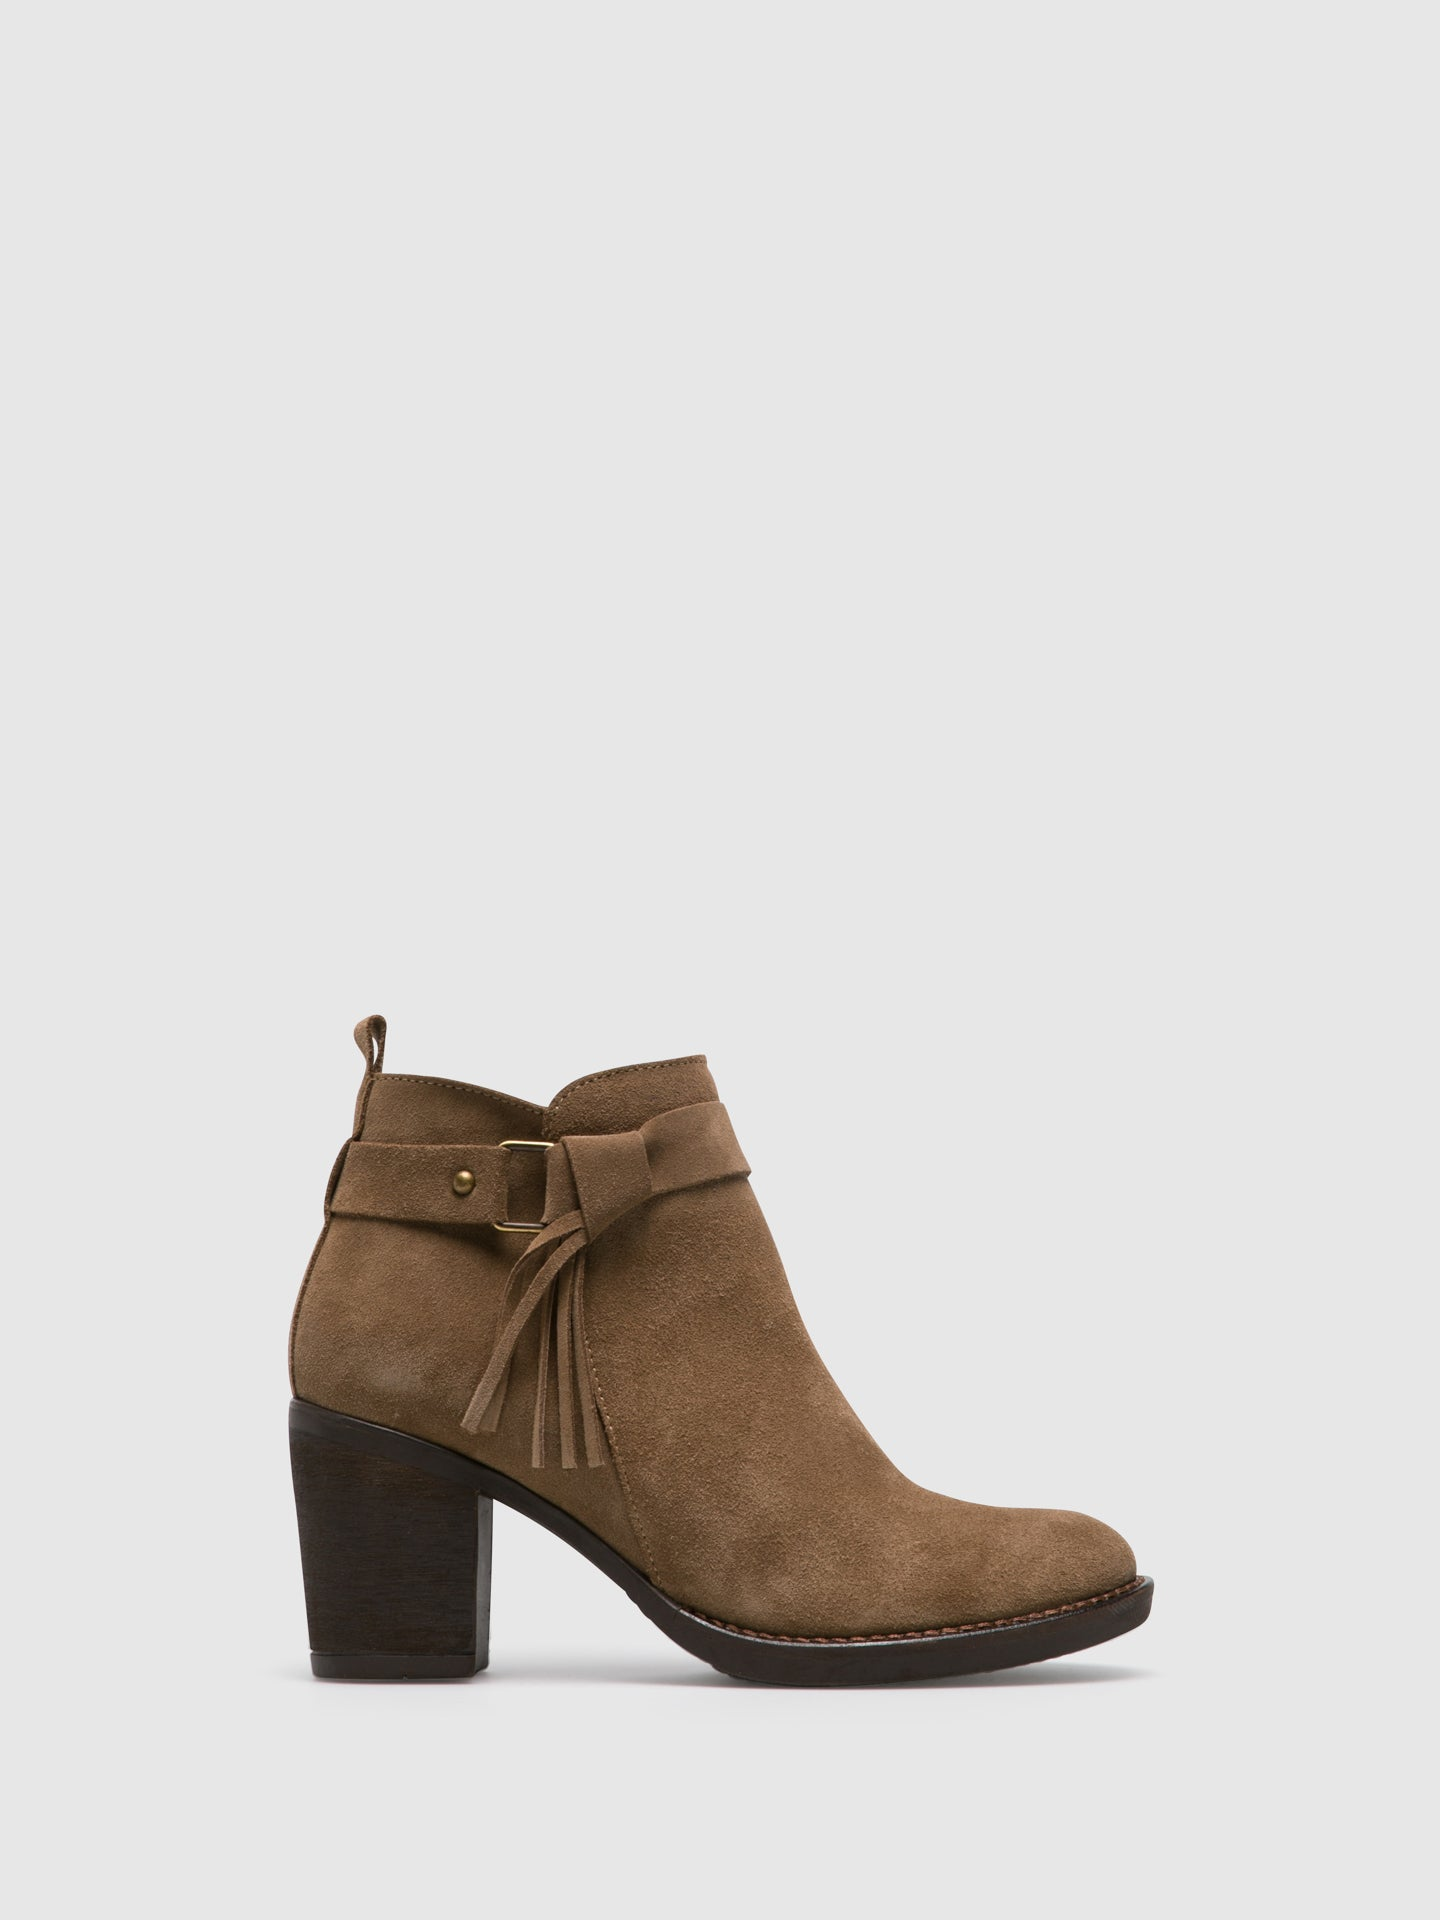 Foreva Wheat Zip up Ankle Boots